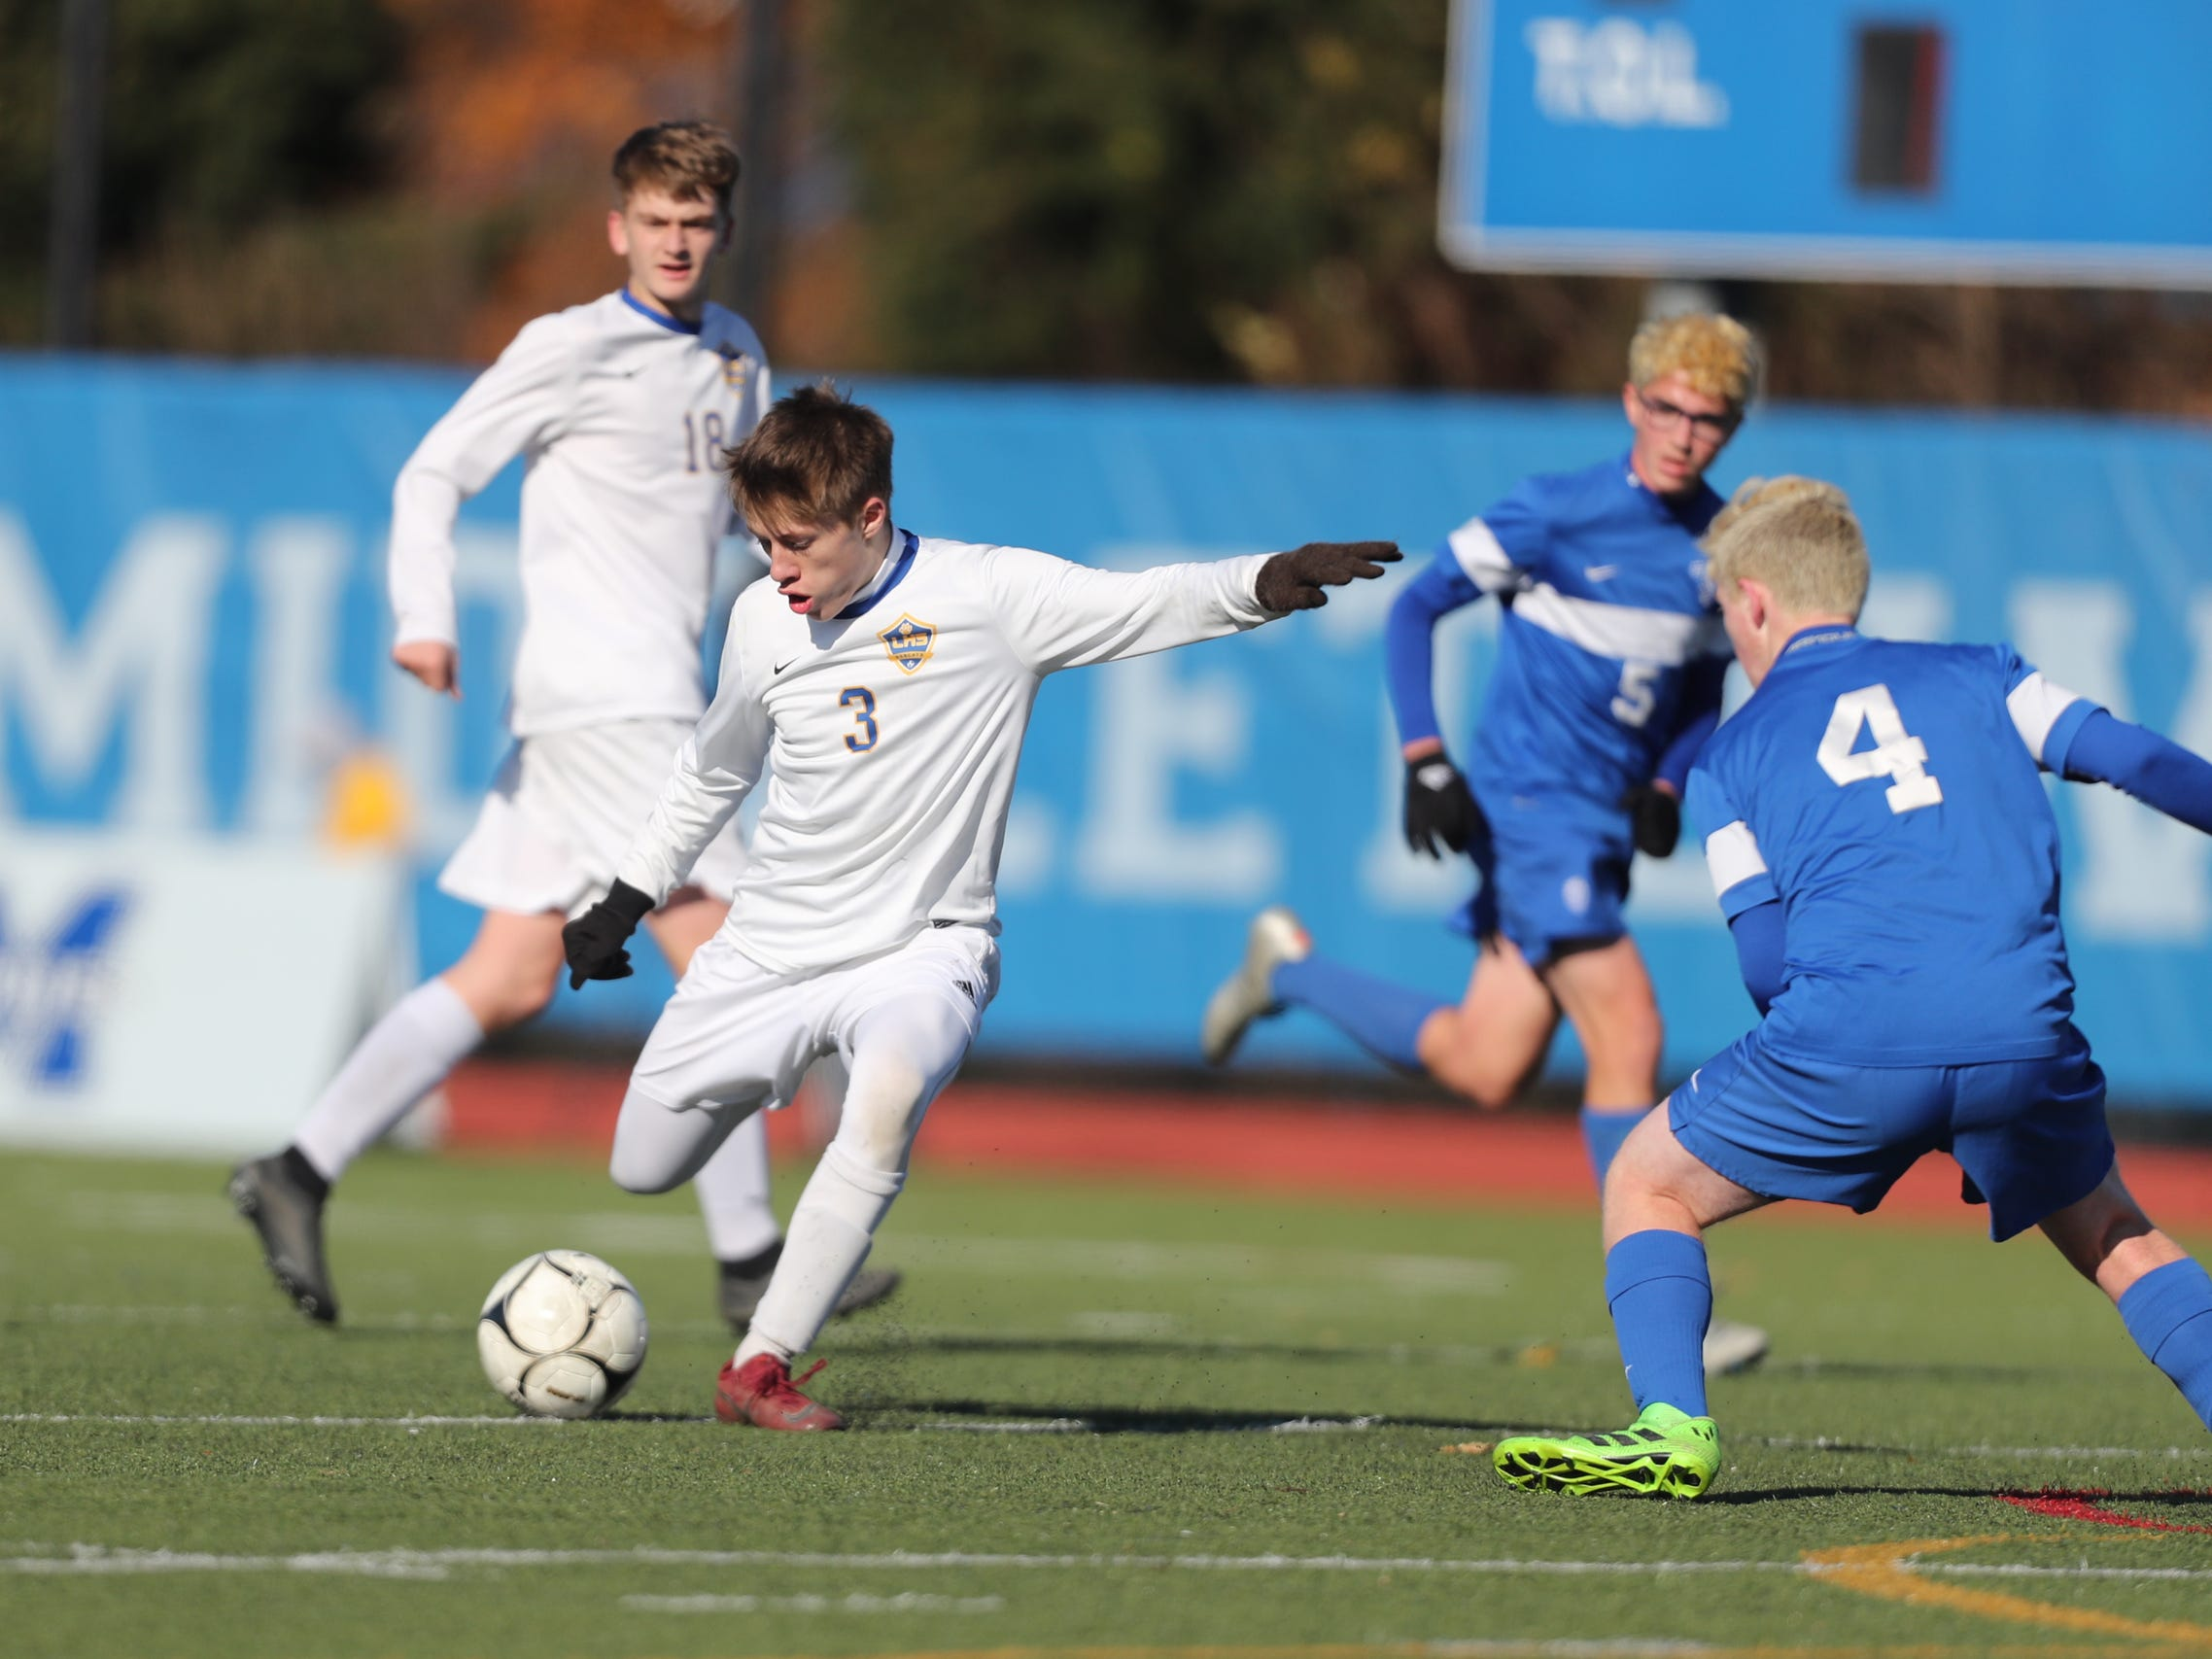 Lansing defeats Geneseo 3-0 in the Class C boys state soccer final at Middletown High School in Middletown on Sunday, November 11, 2018.